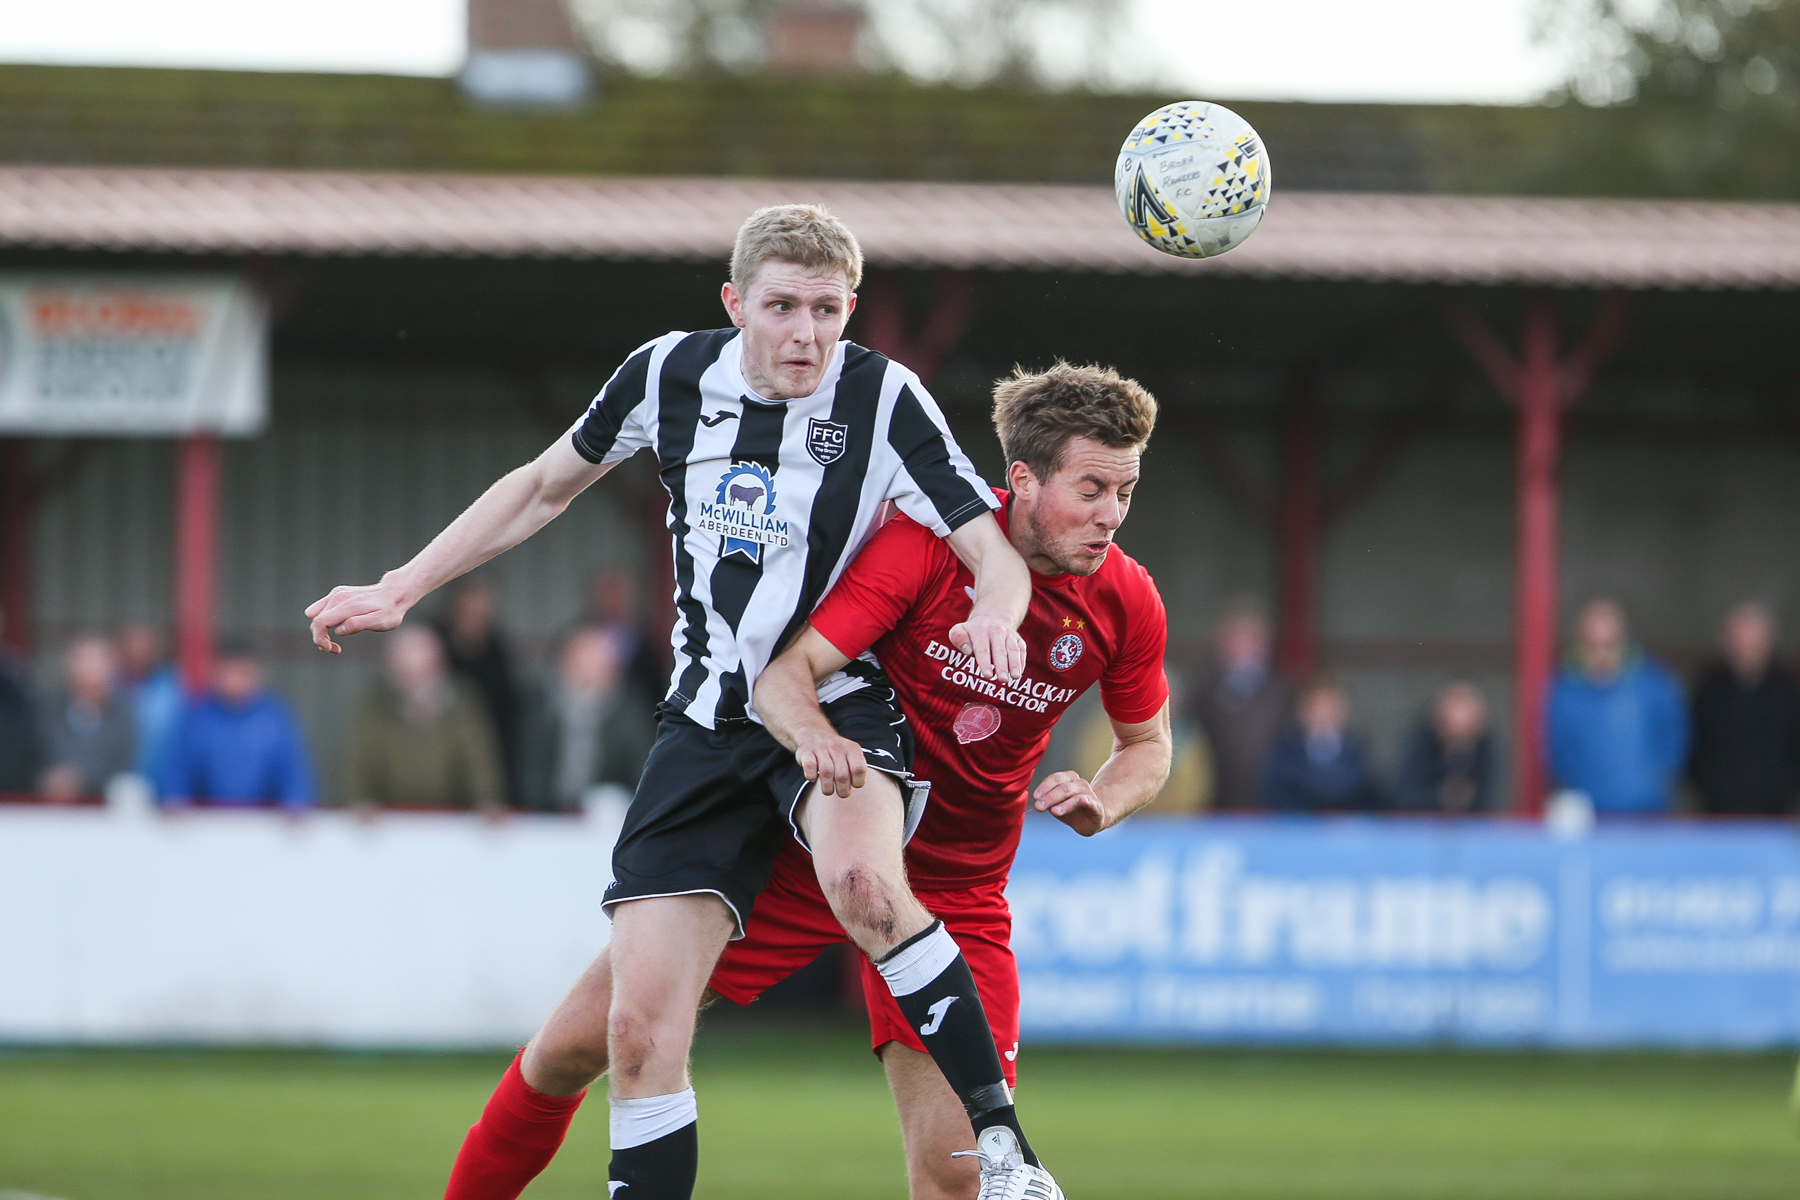 Fraserburgh's Ross Willox out jumps Brora's Martin MacLean earlier in the season.